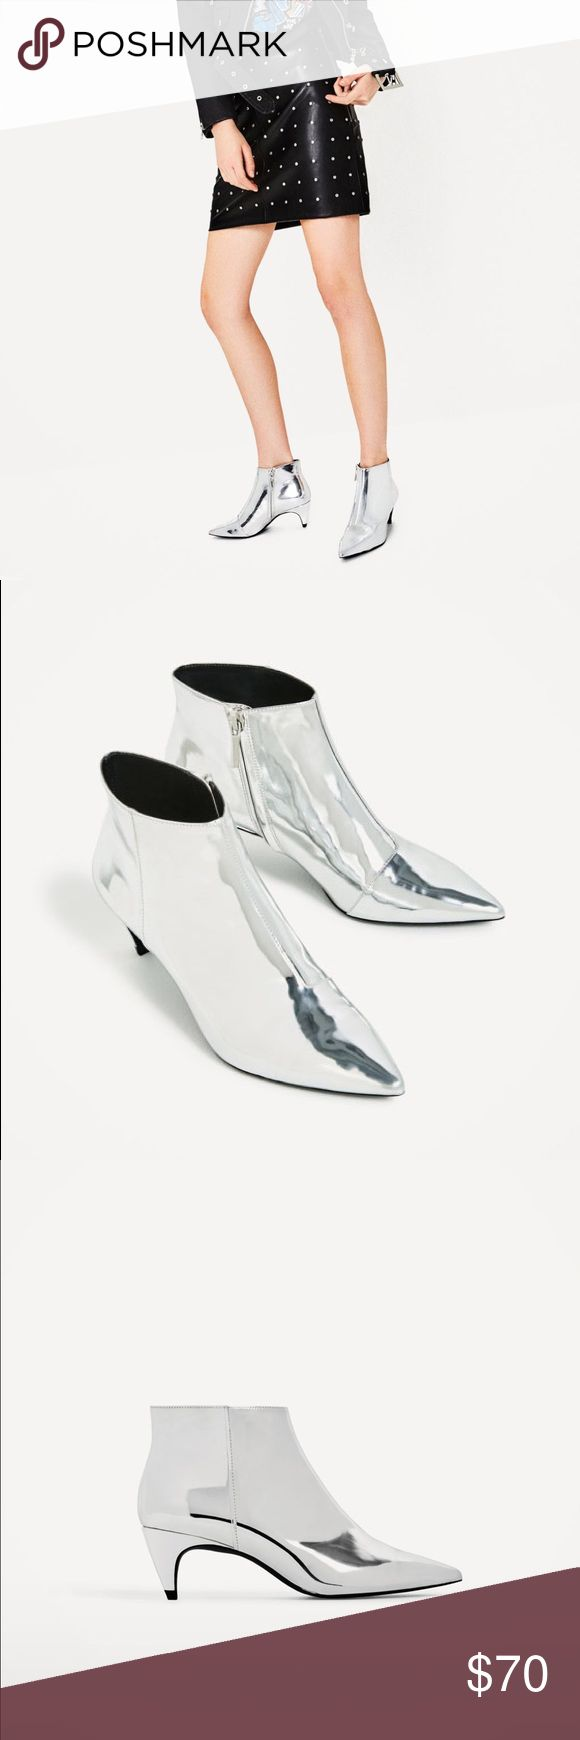 "Zara silver ankle boots - NWT!! Zara silver pointed ankle boots - NWT!! Silver laminated finish. Interior zip fastening. Heel height: 2.2"". Upper: 100% polyurethane thermoplastic. Lining: 80% polyurethane, 20% polyester. Sole: 100% polyurethane thermoplastic. Slipsole: 100% goat leather. Smoke-free home 😊 Zara Shoes Ankle Boots & Booties"